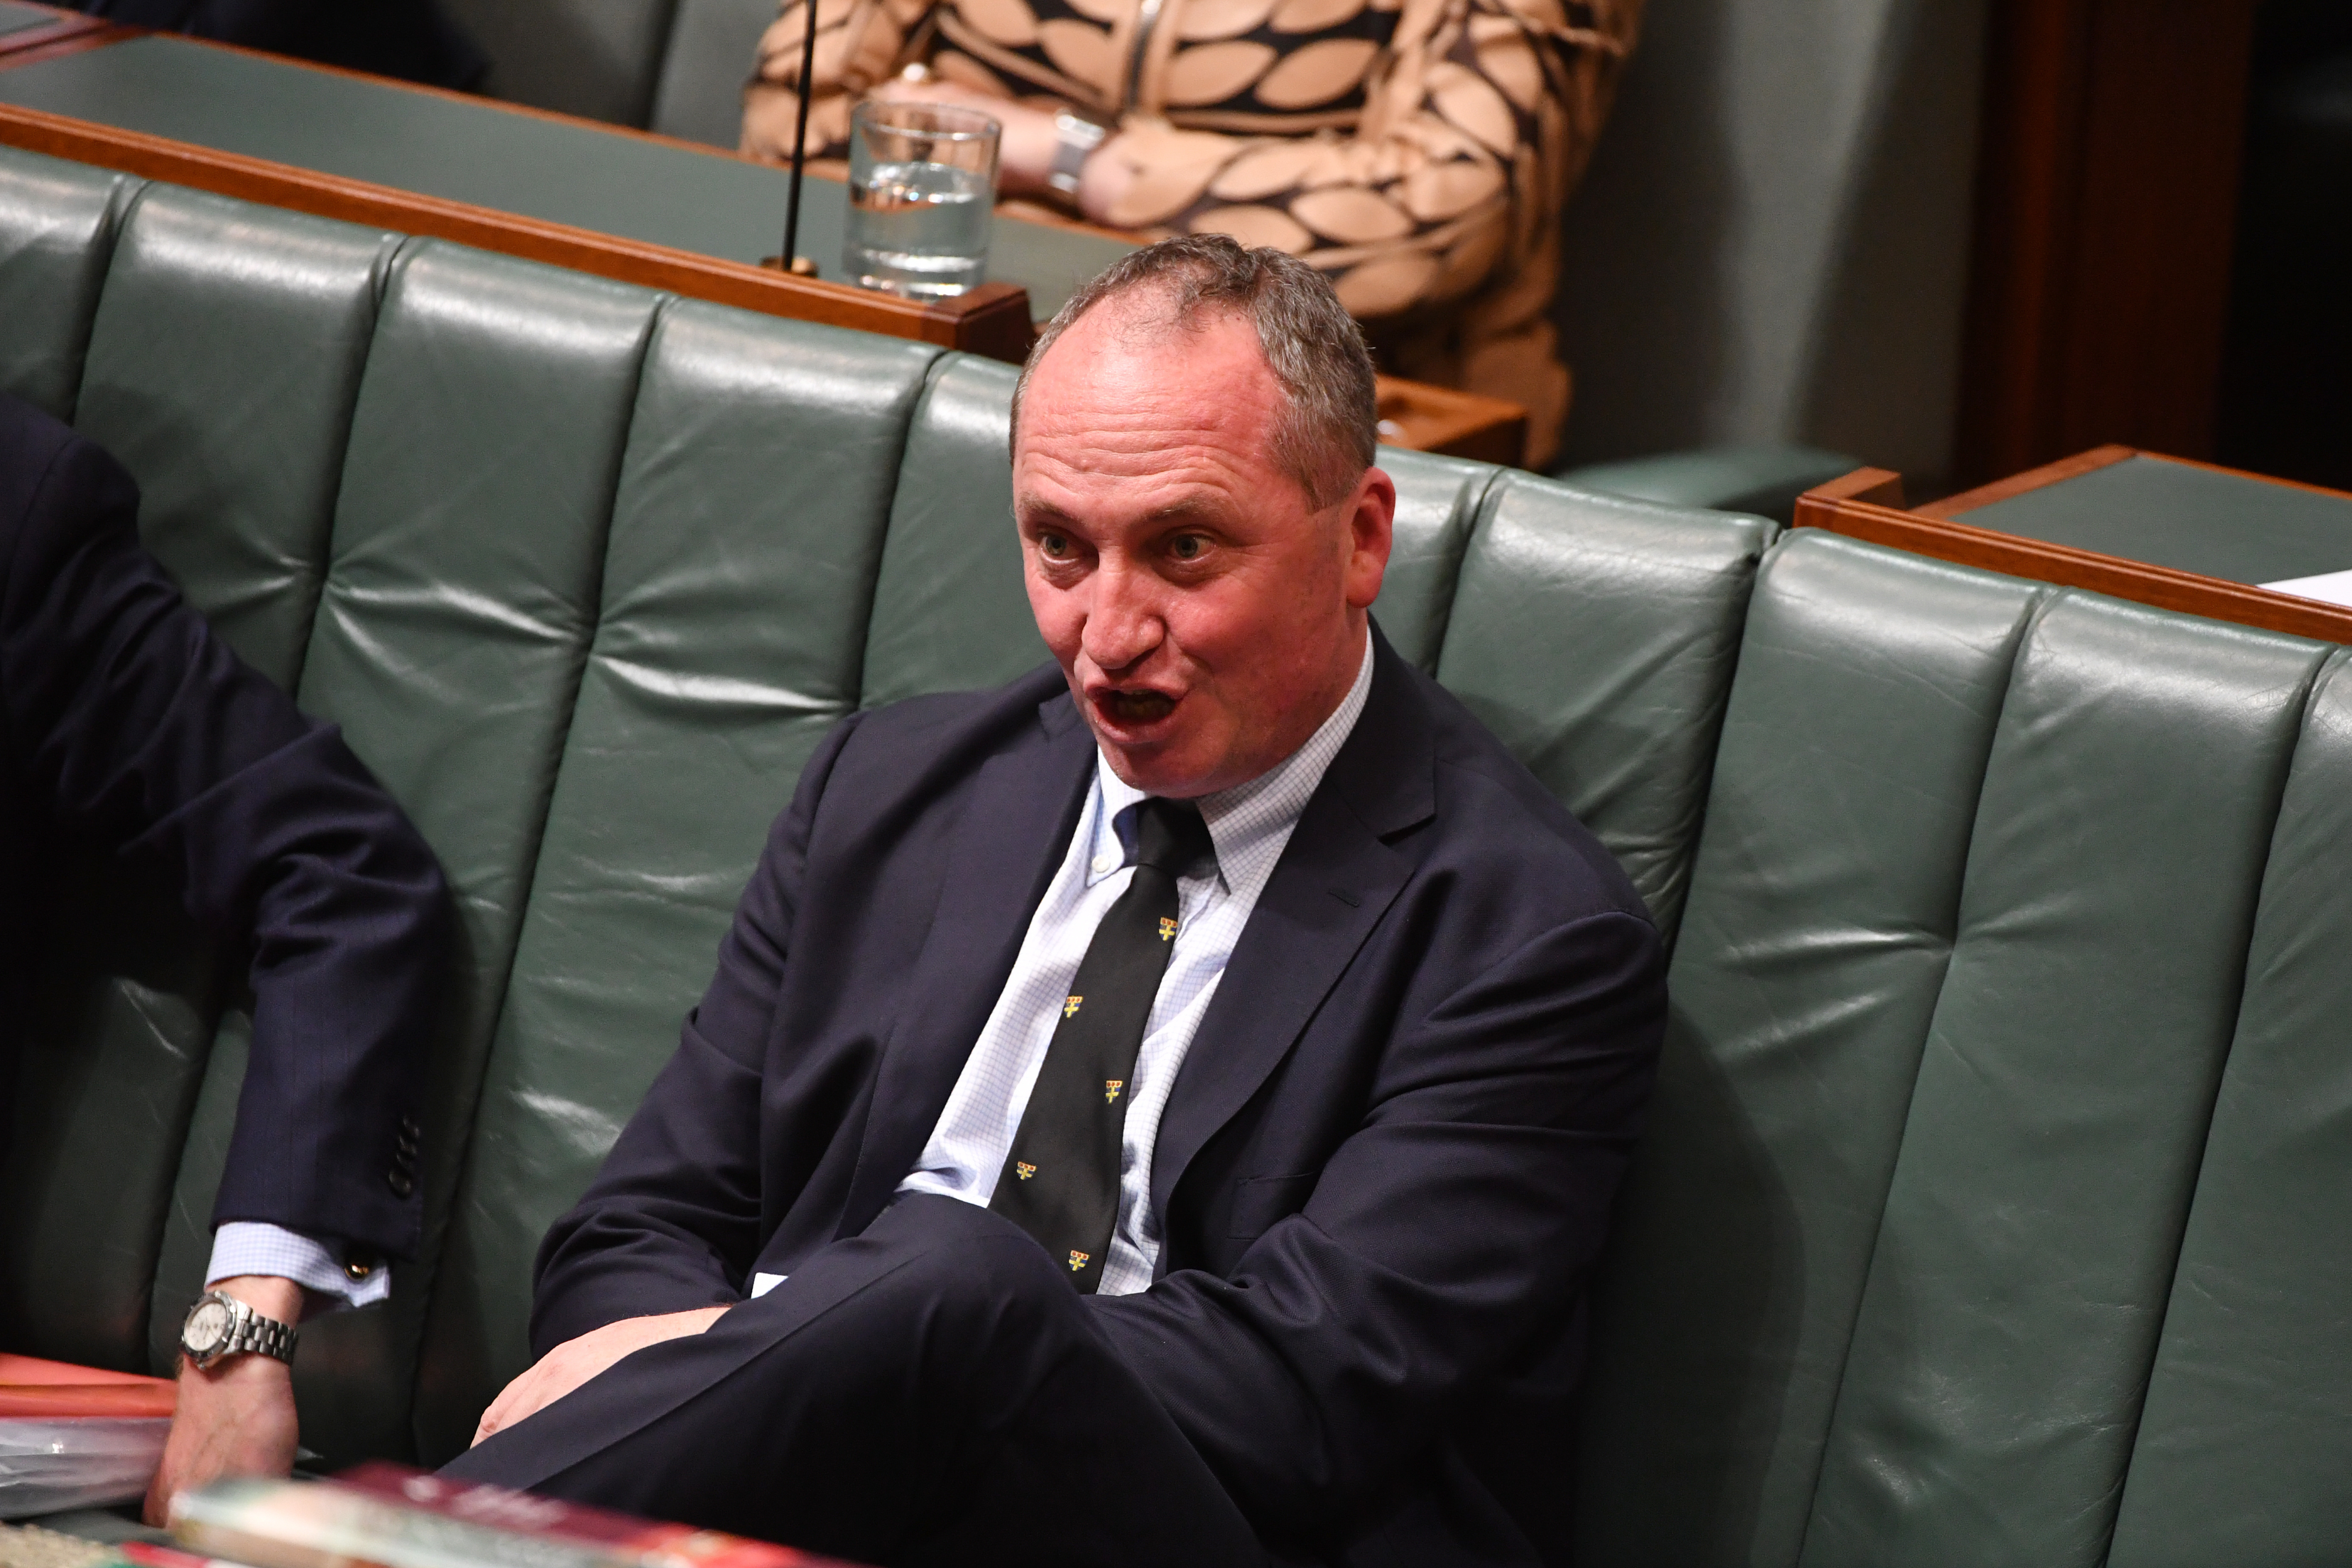 Nationals leader Barnaby Joyce is preparing to take the prime minister's chair in Malcolm Turnbull's absence next week. (AAP)